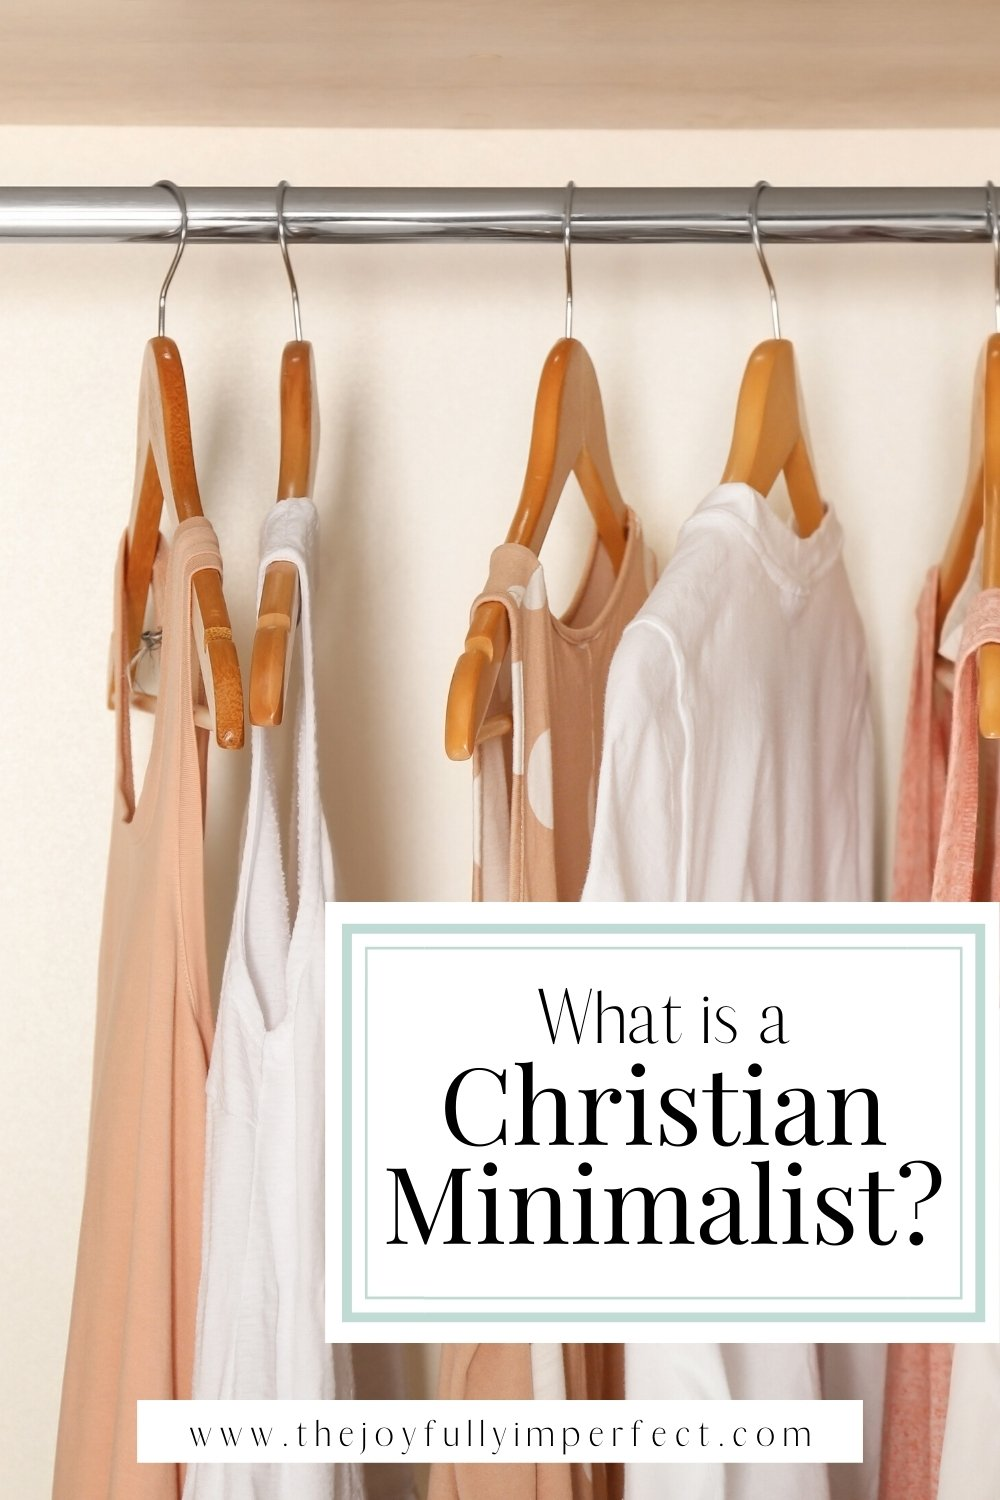 Simple clothes hanging in a closet for post What is a Christian Minimalist